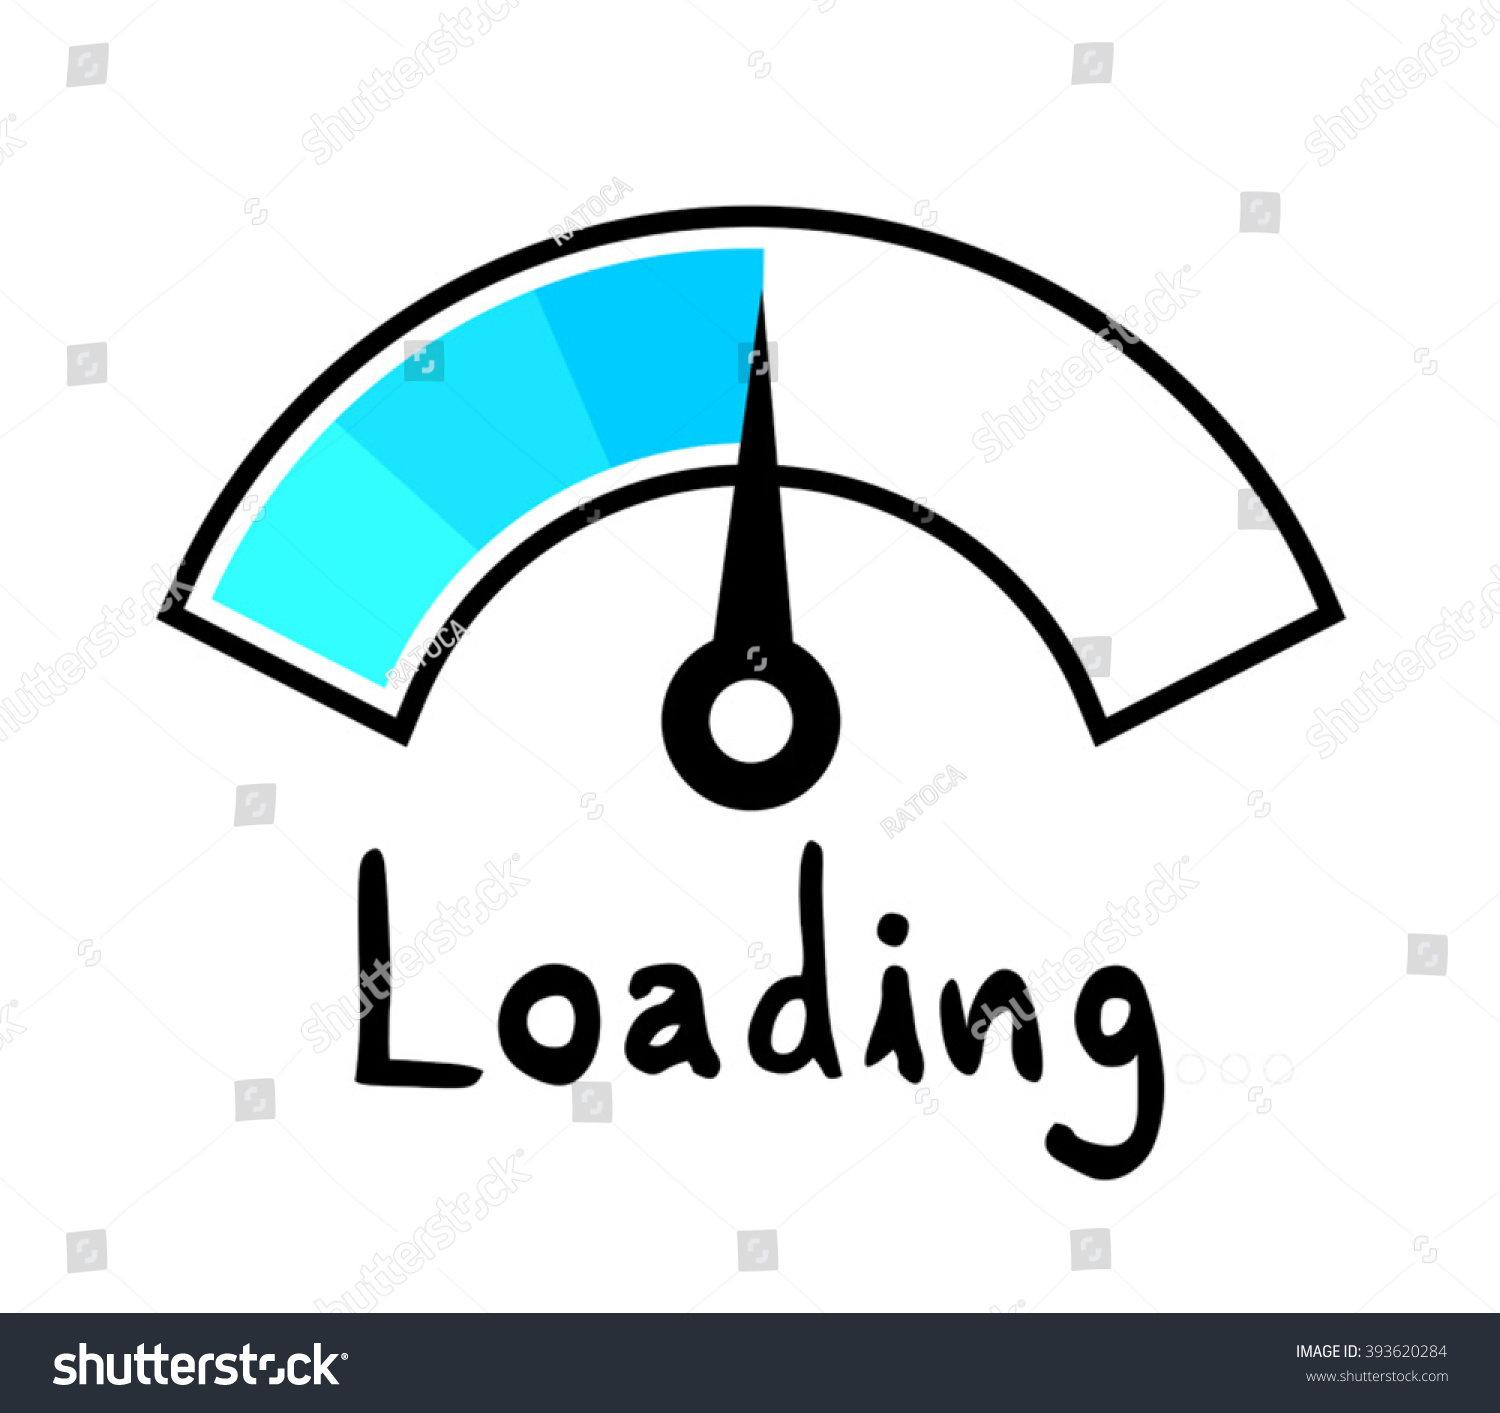 Loading symbol stock vector 393620284 shutterstock loading symbol biocorpaavc Image collections